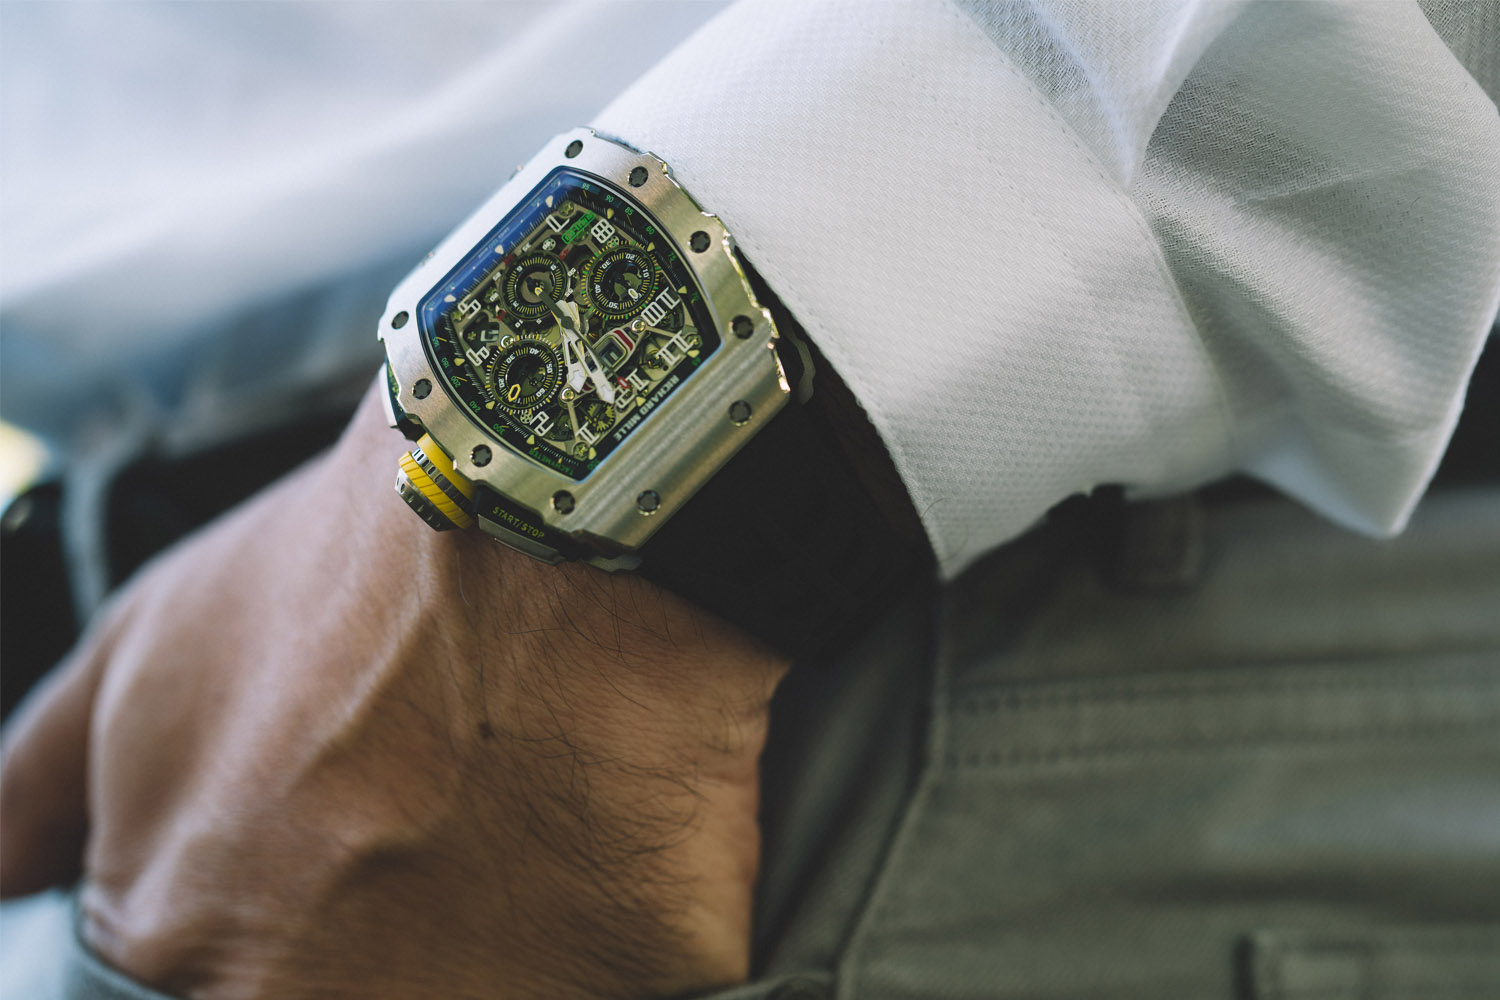 Richard Mille RM 11-03 Automatic Flyback Chronograph (credits: Alex Teuscher)